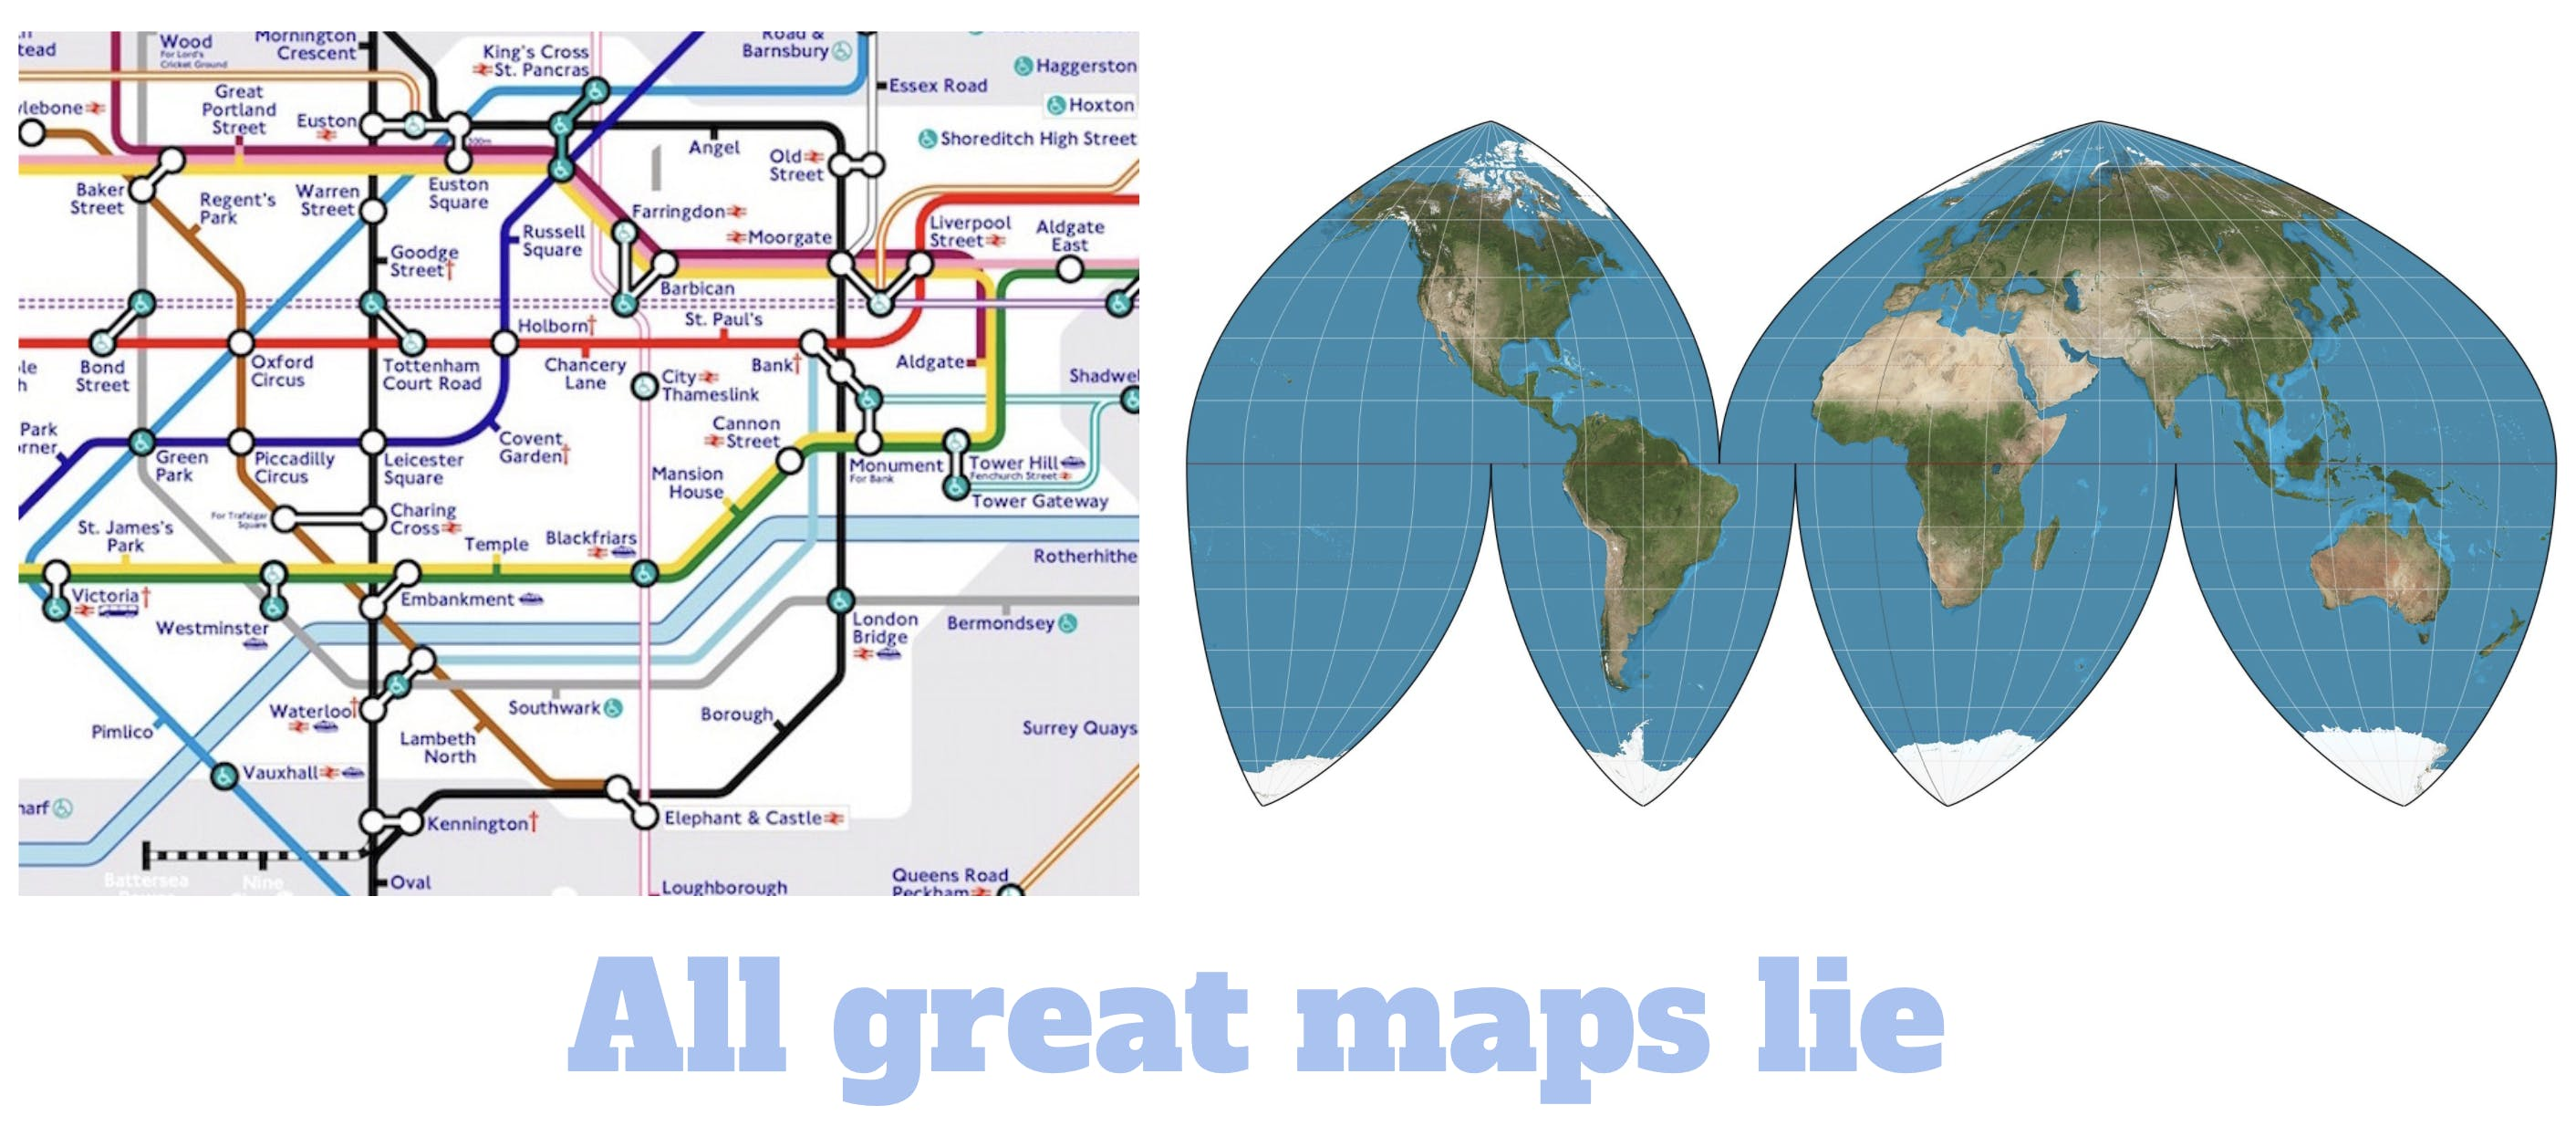 image showing a London tube map and an flattened globe of Earth - with the caption: 'all great maps lie'